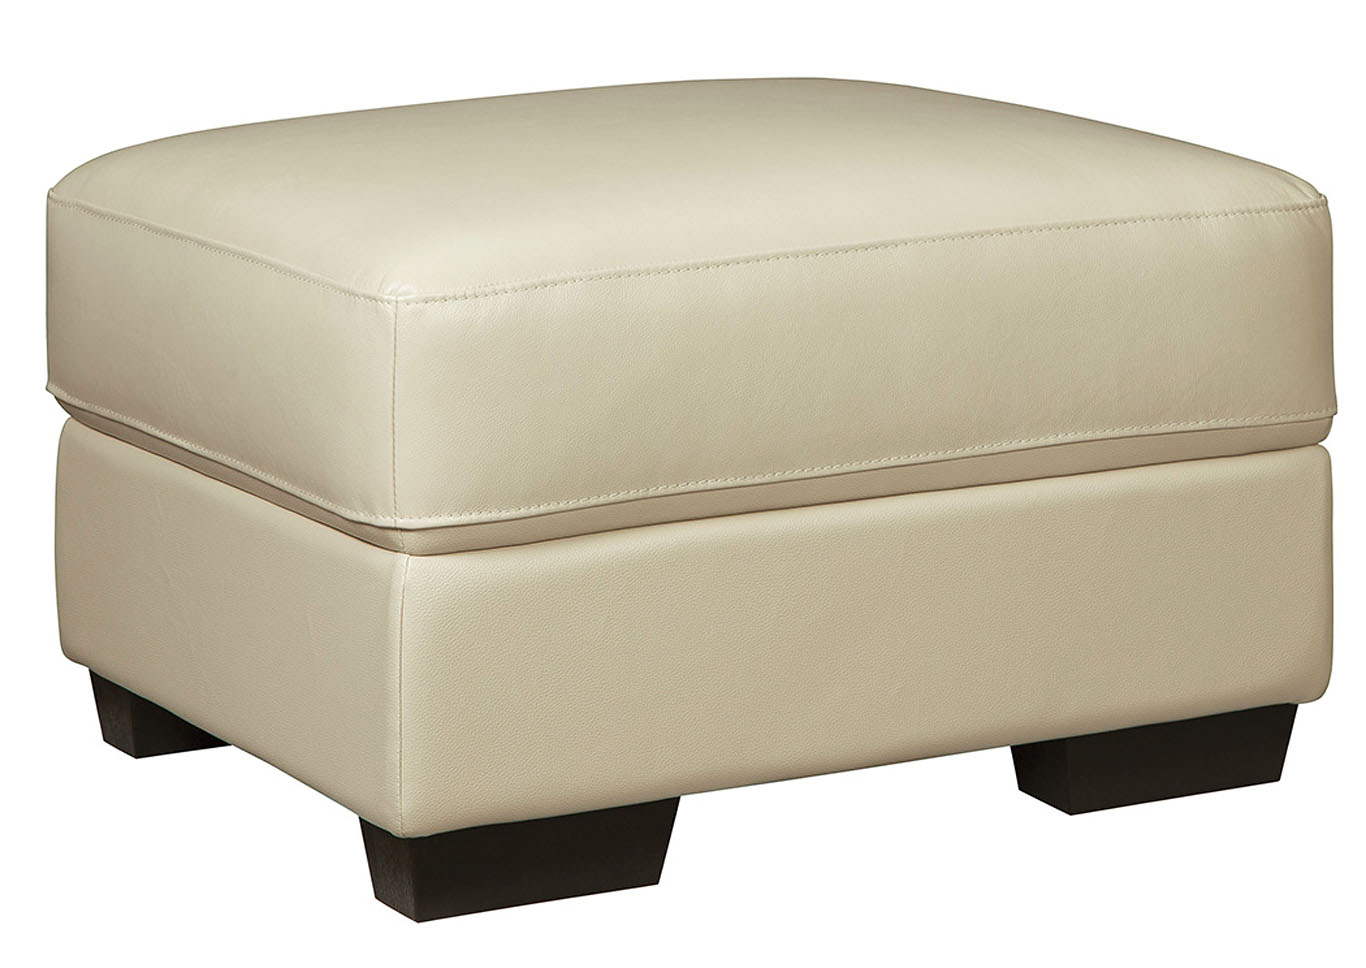 Fontenot Cream Ottoman,Signature Design By Ashley